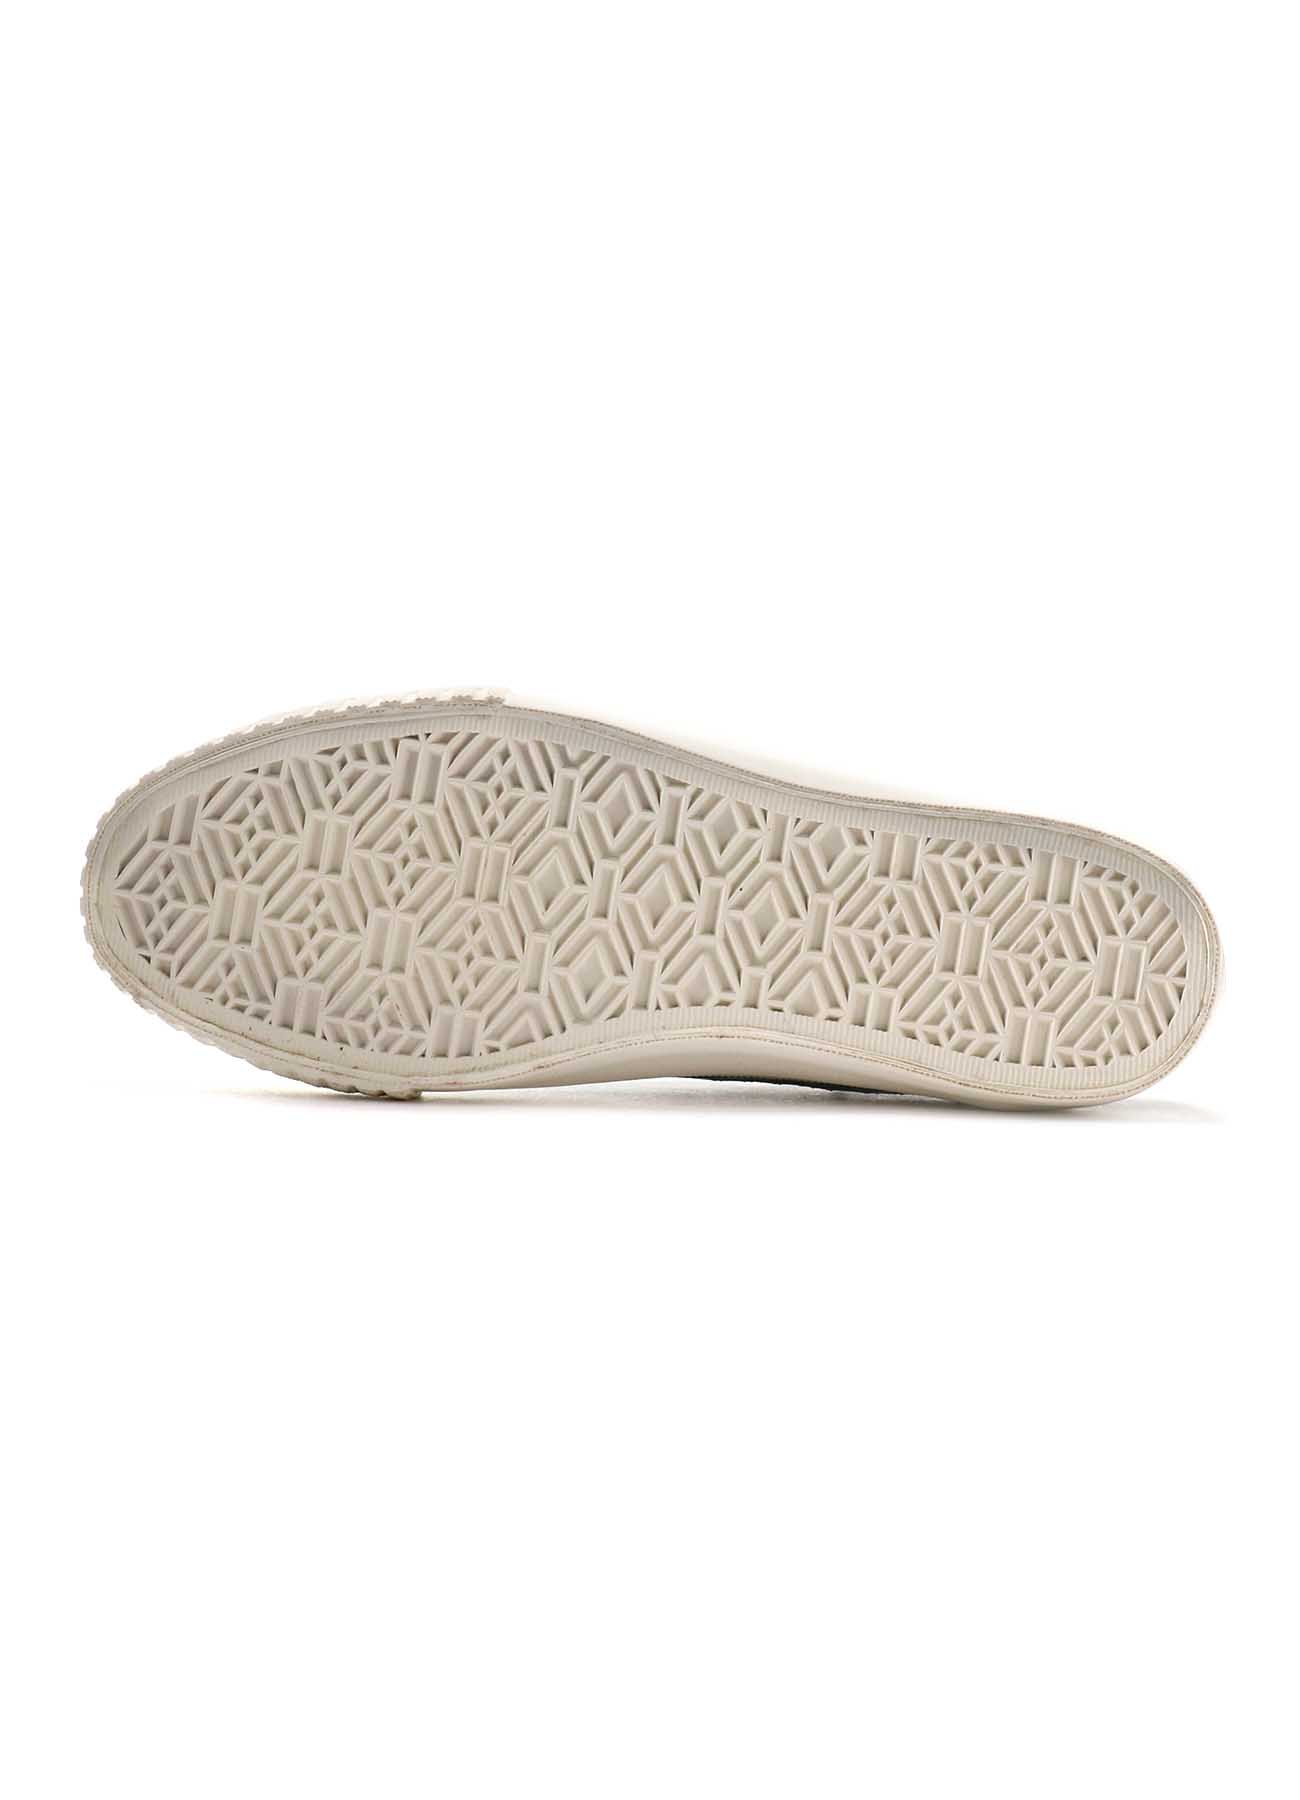 C/CAMBRIC SLIP ON SNEAKER